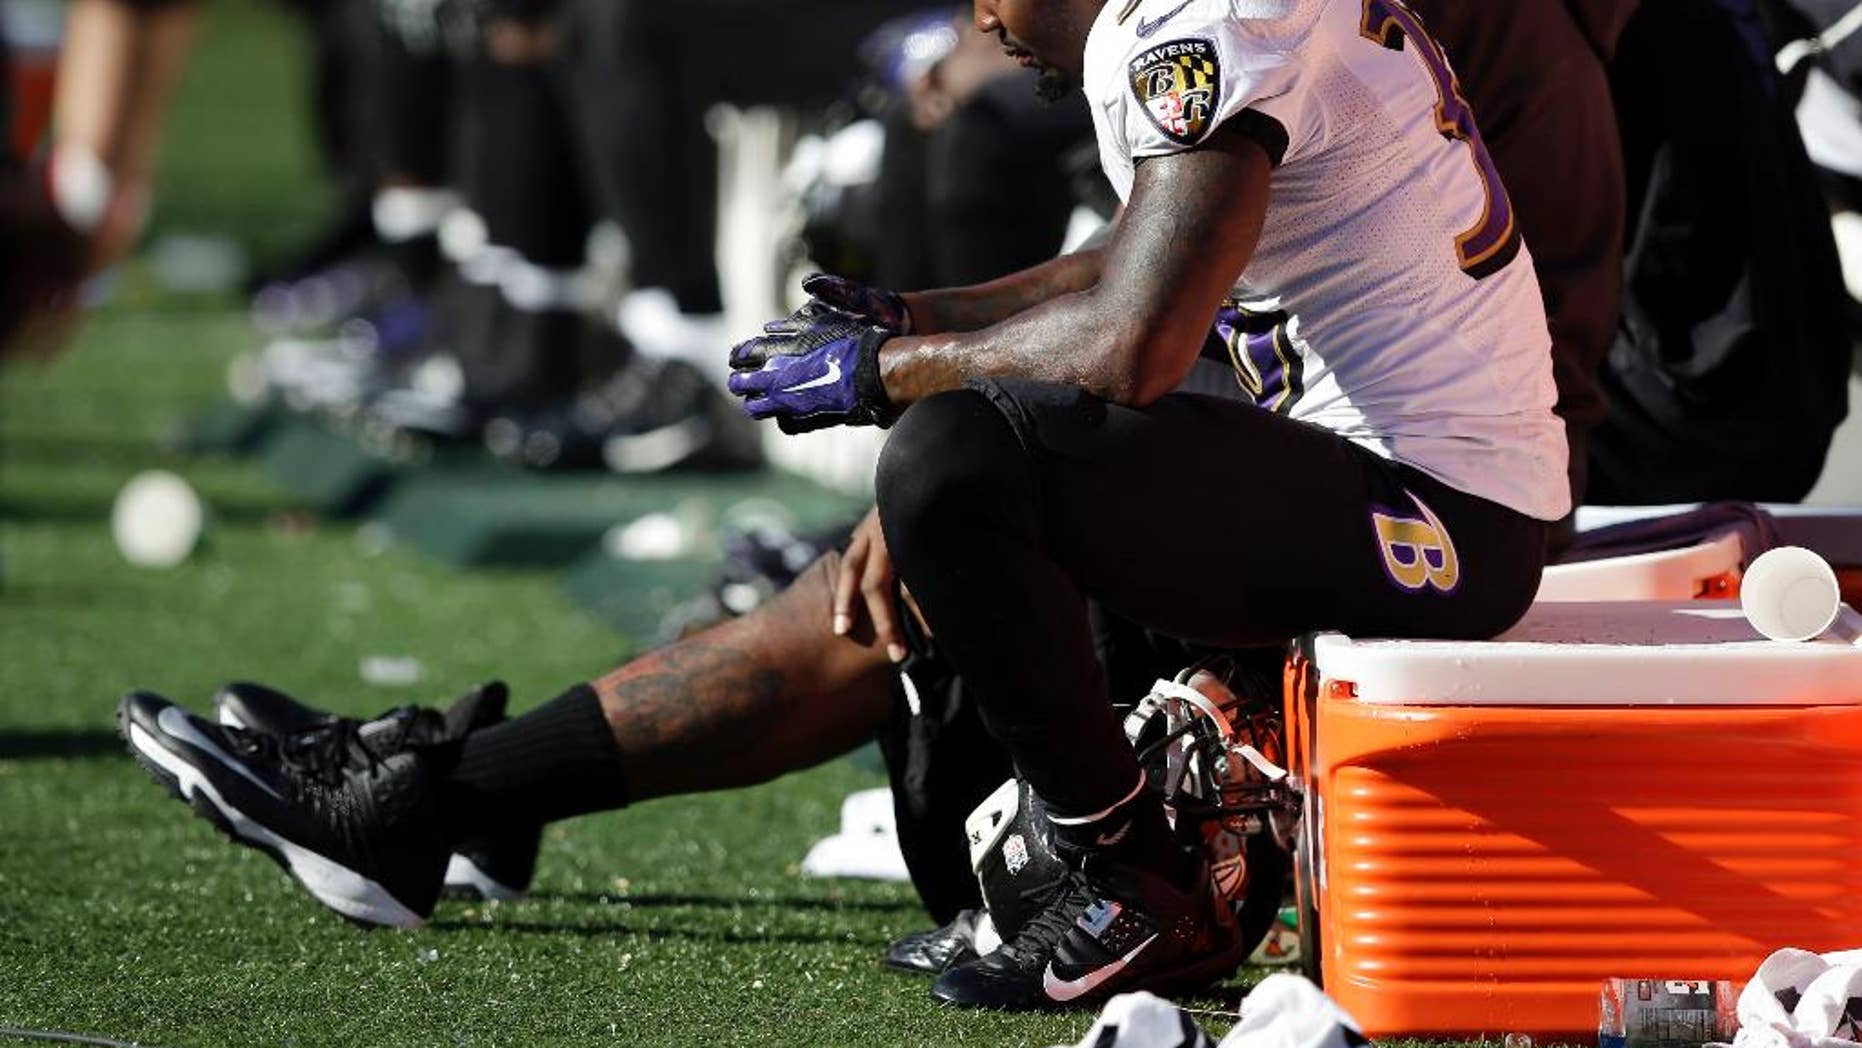 Baltimore Ravens strong safety Jeromy Miles sits on the bench in the final seconds of a 27-24 loss to the Cincinnati Bengals in an NFL football game in Cincinnati, Sunday, Oct. 26, 2014. (AP Photo/Darron Cummings)